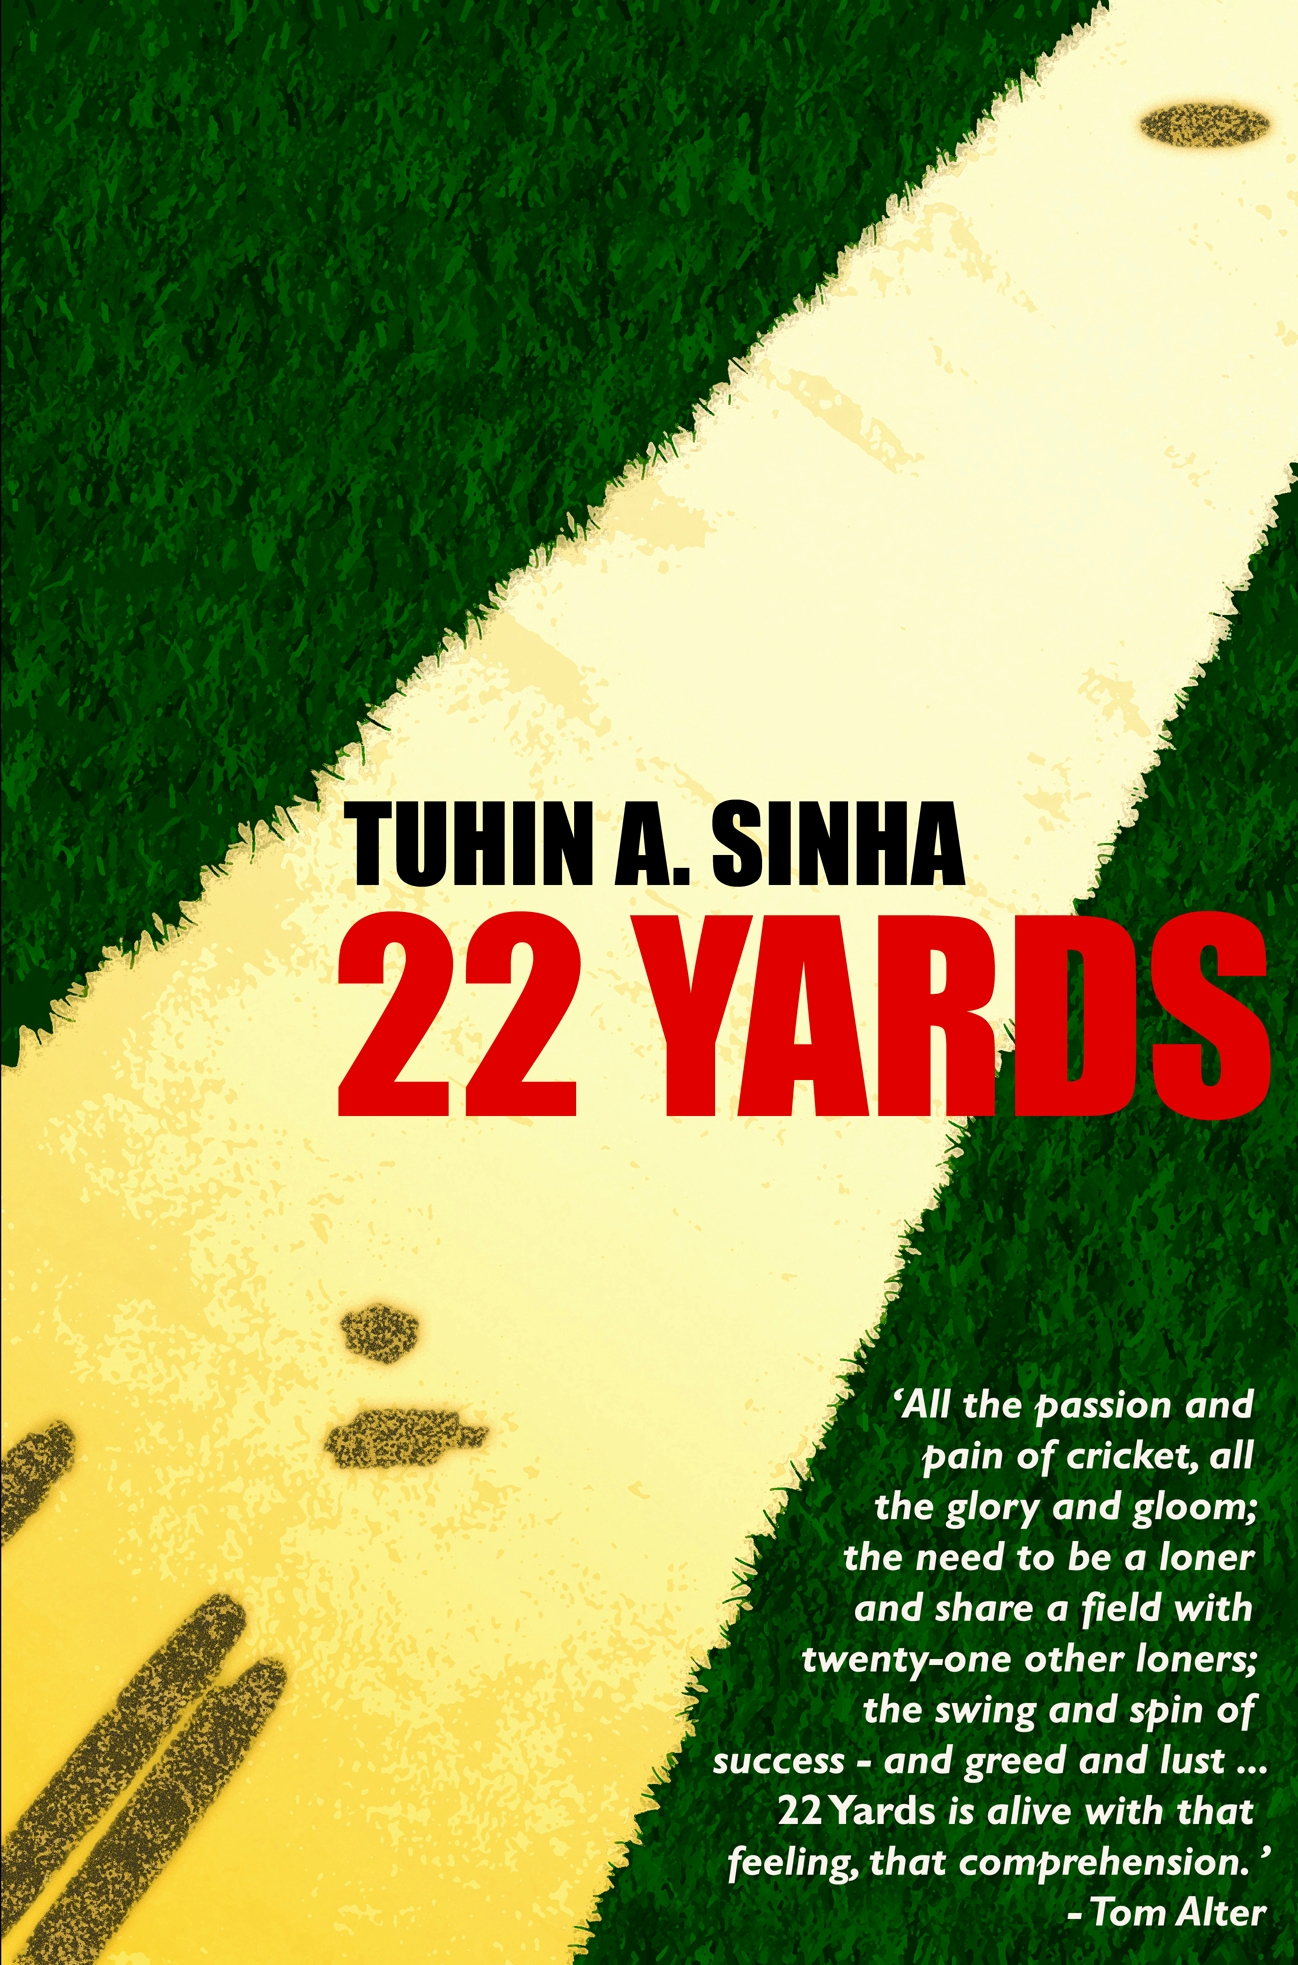 the 22 YARDS cover